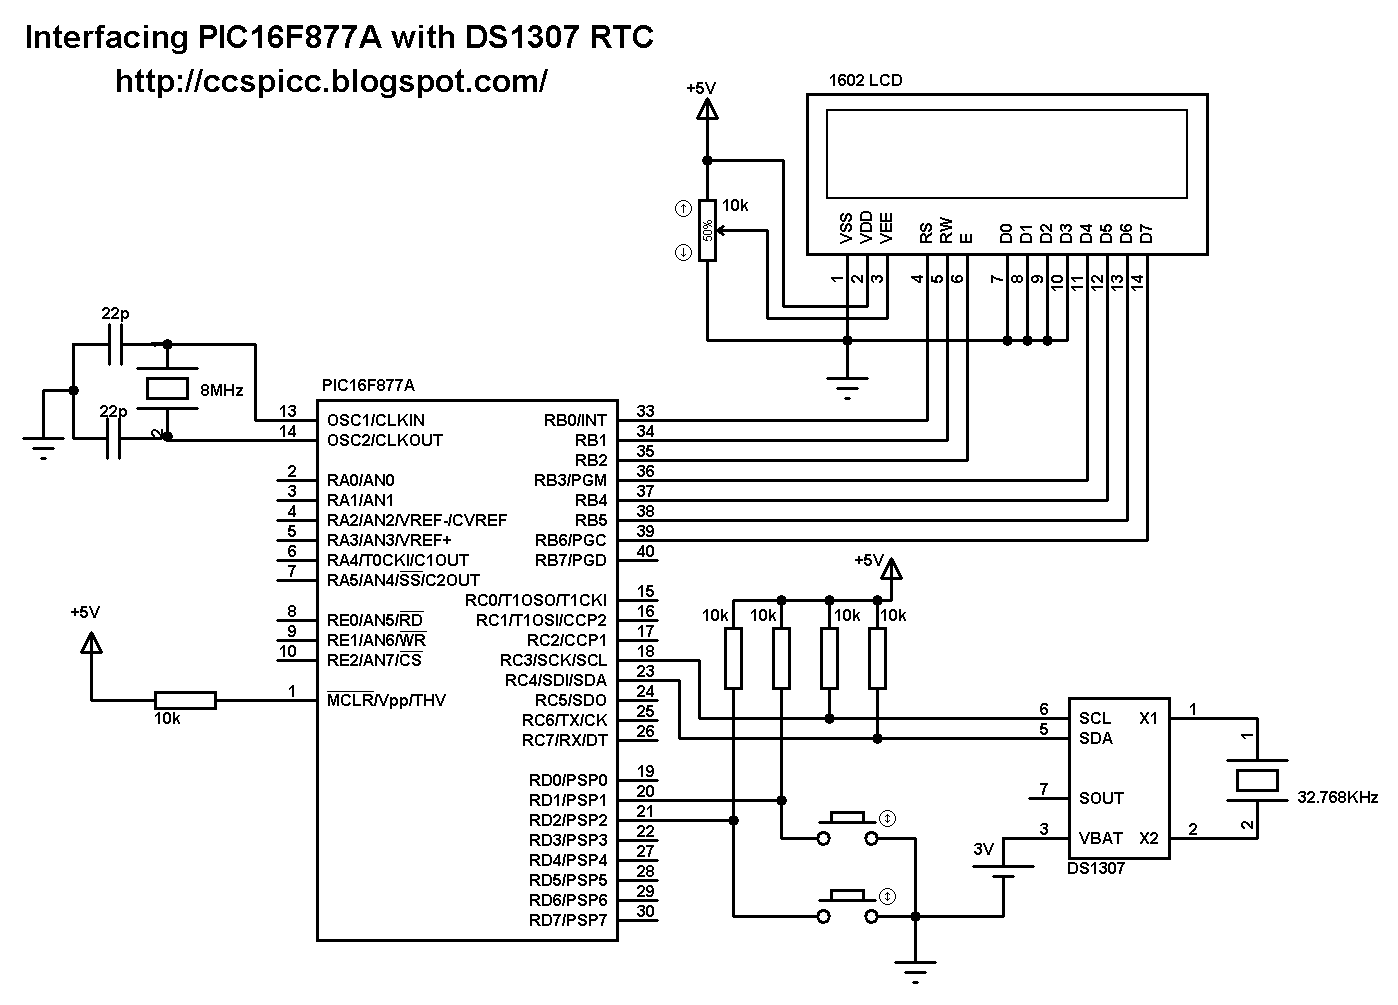 real time clock using pic16f877a microcontroller and ds1307 serial rtc